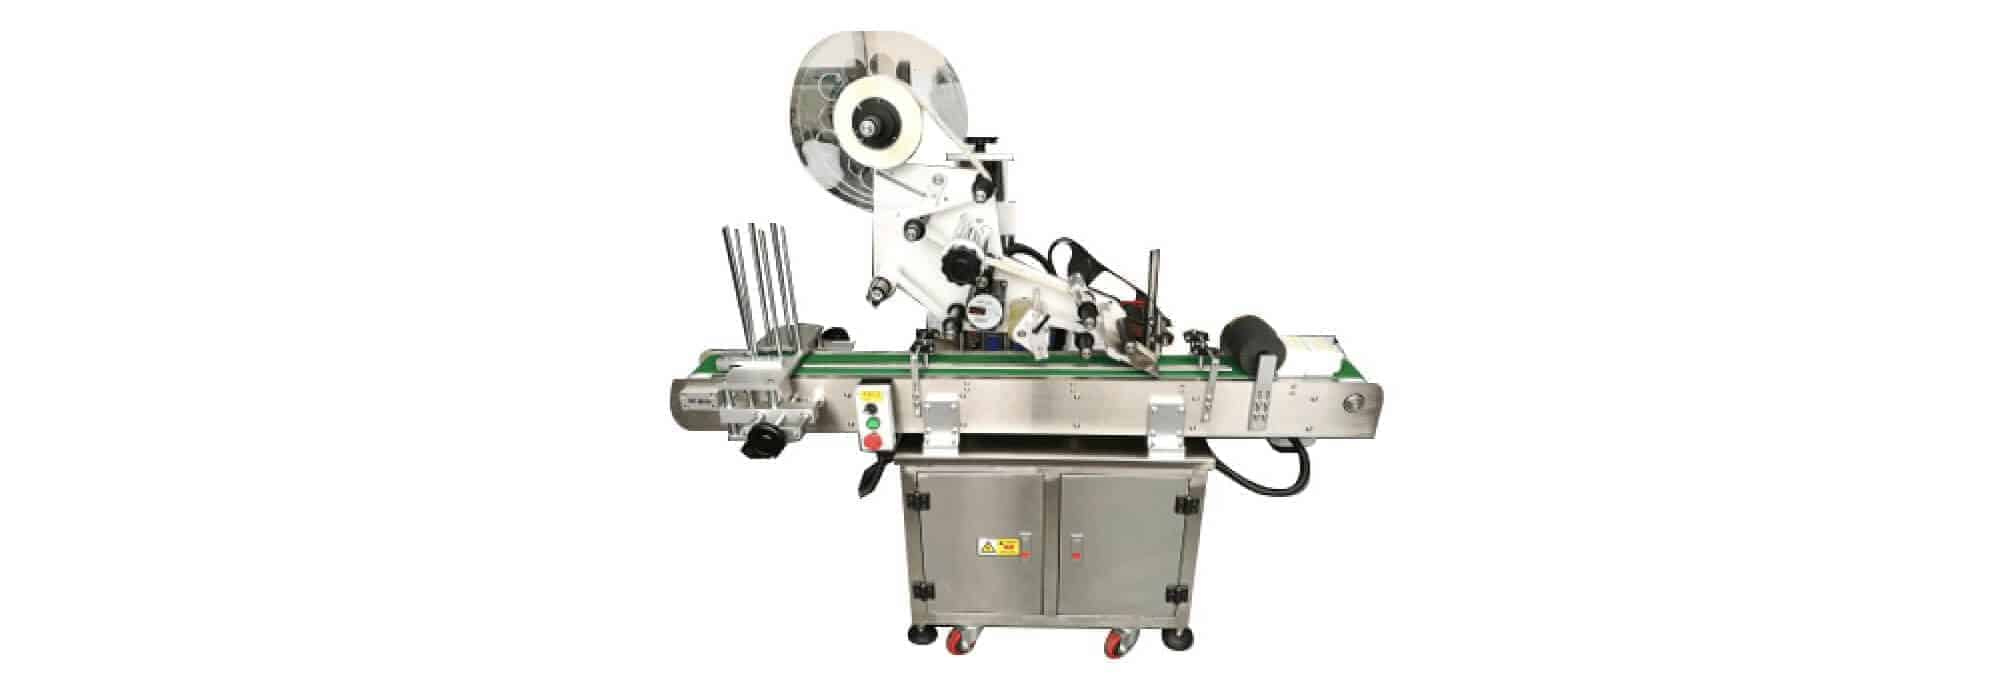 DH L25 Automatic labeling machine - DH-250 Single Sachet Wet Wipes Machine